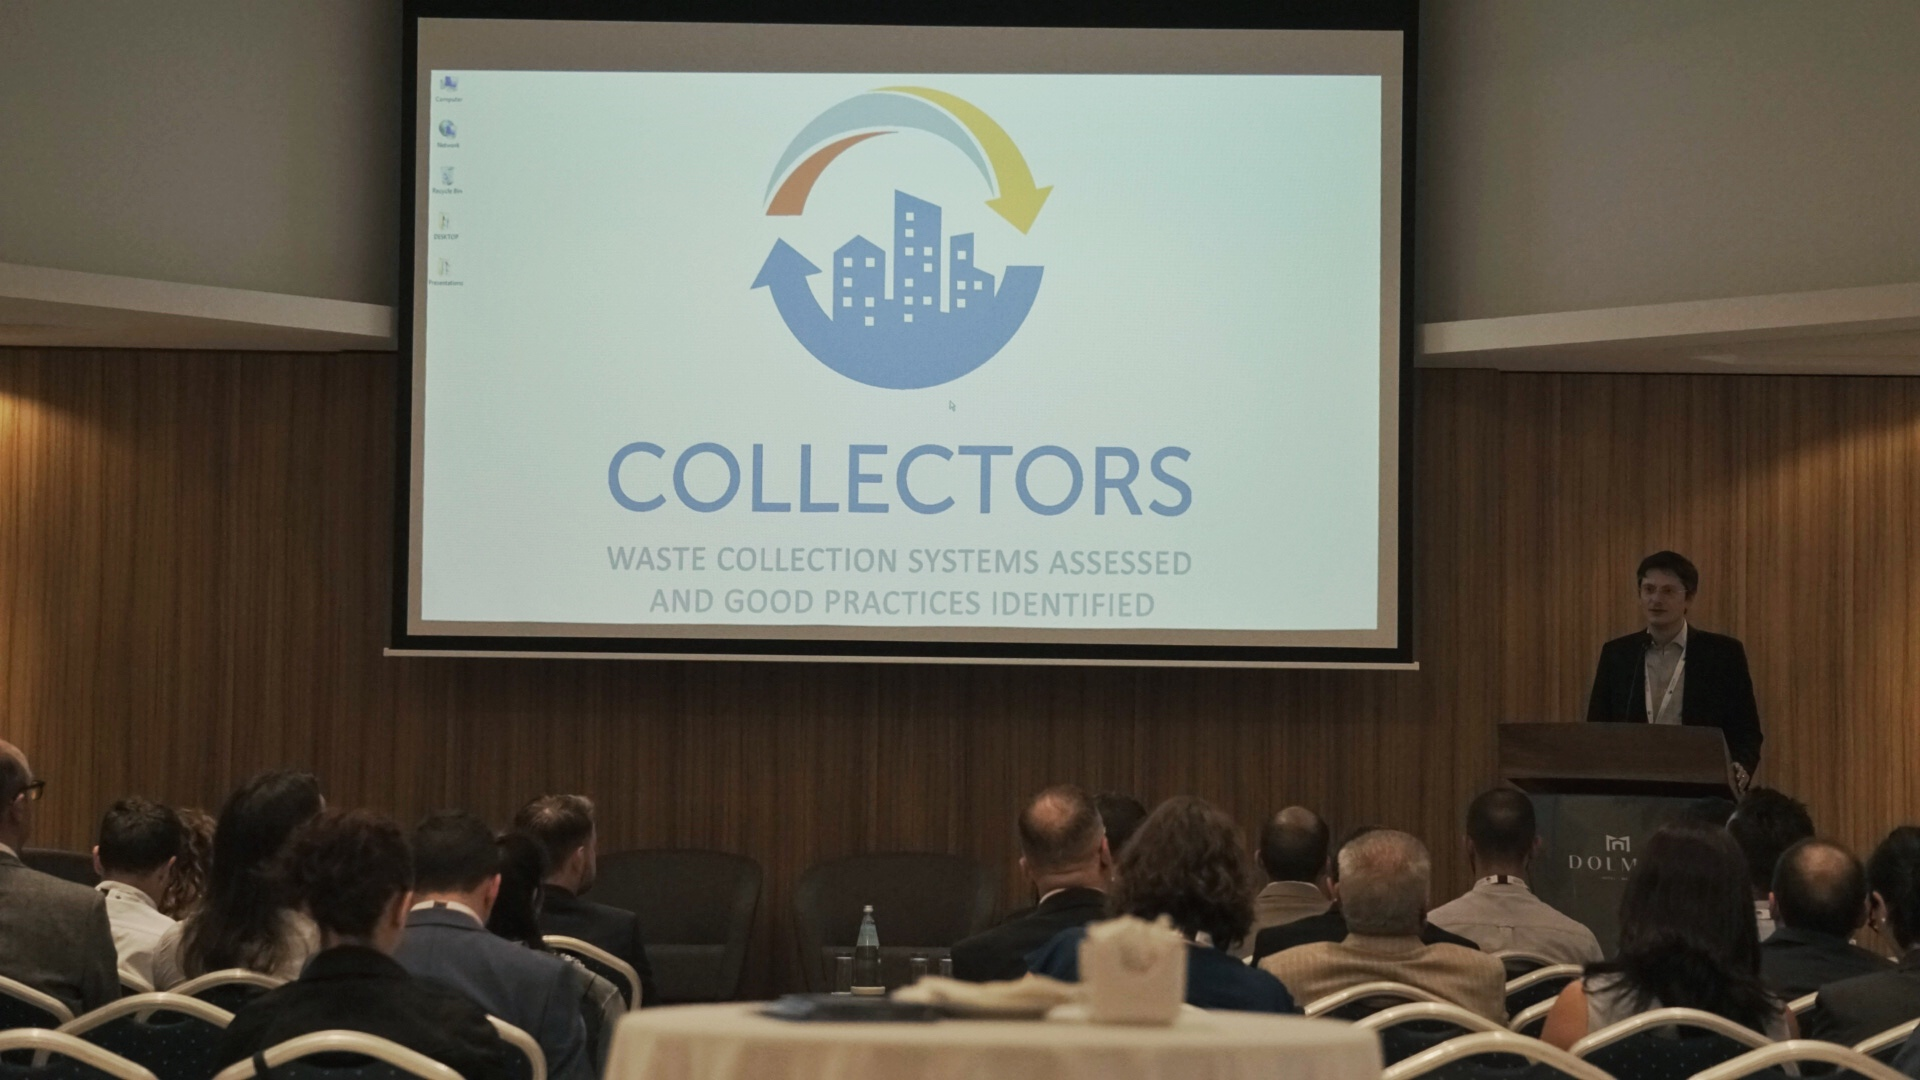 foto van COLLECTORS project